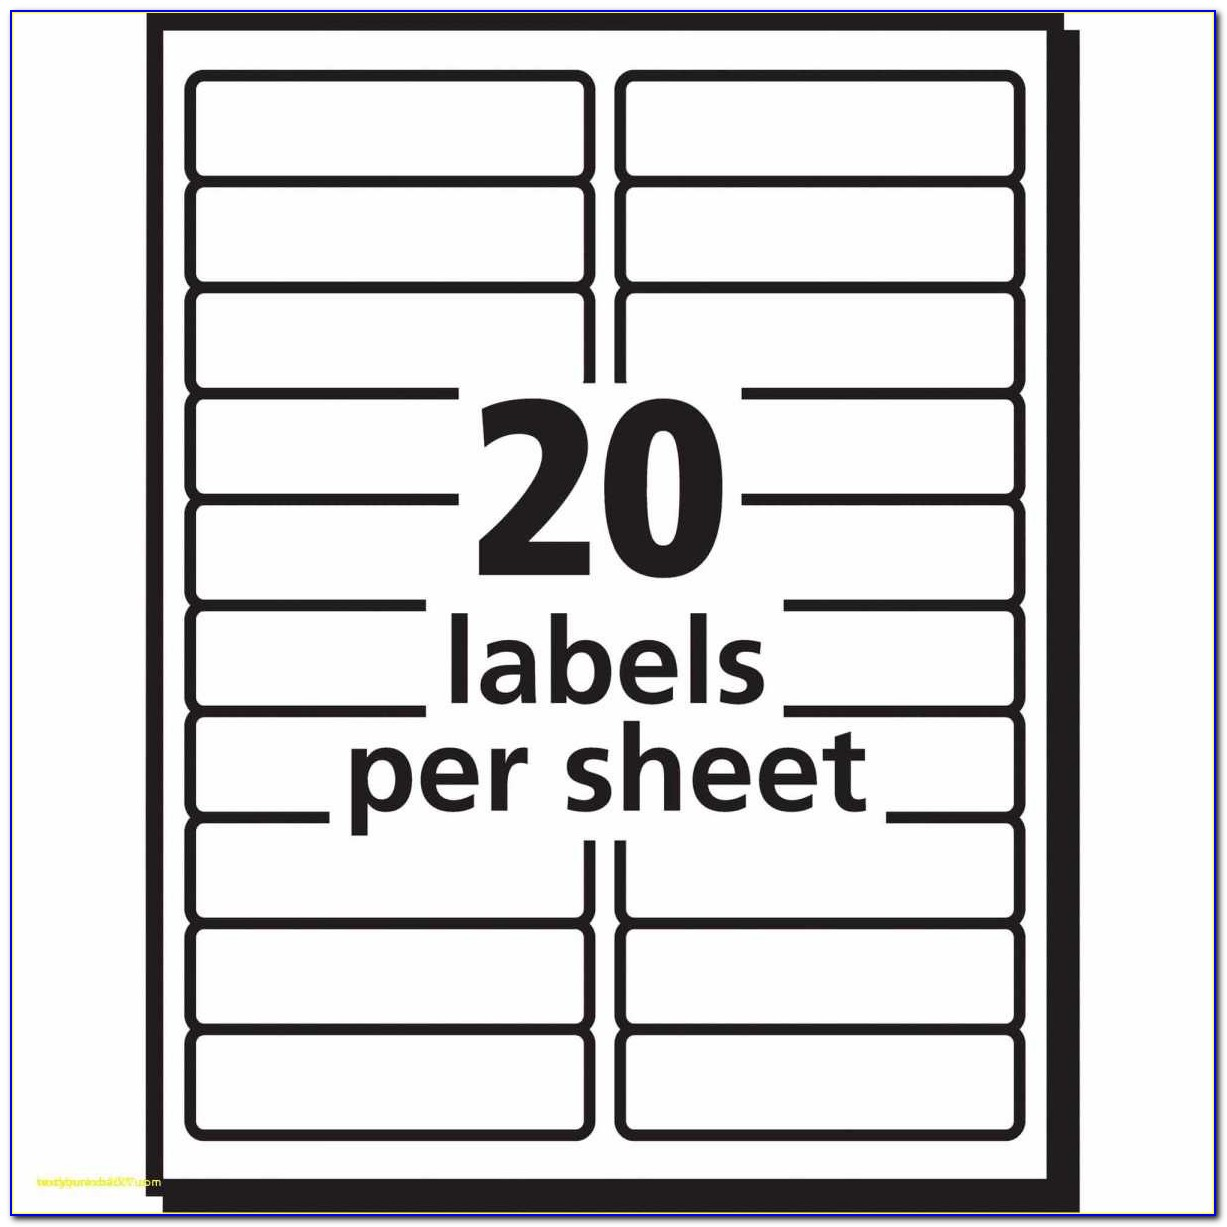 Avery File Labels 30 Per Sheet Template